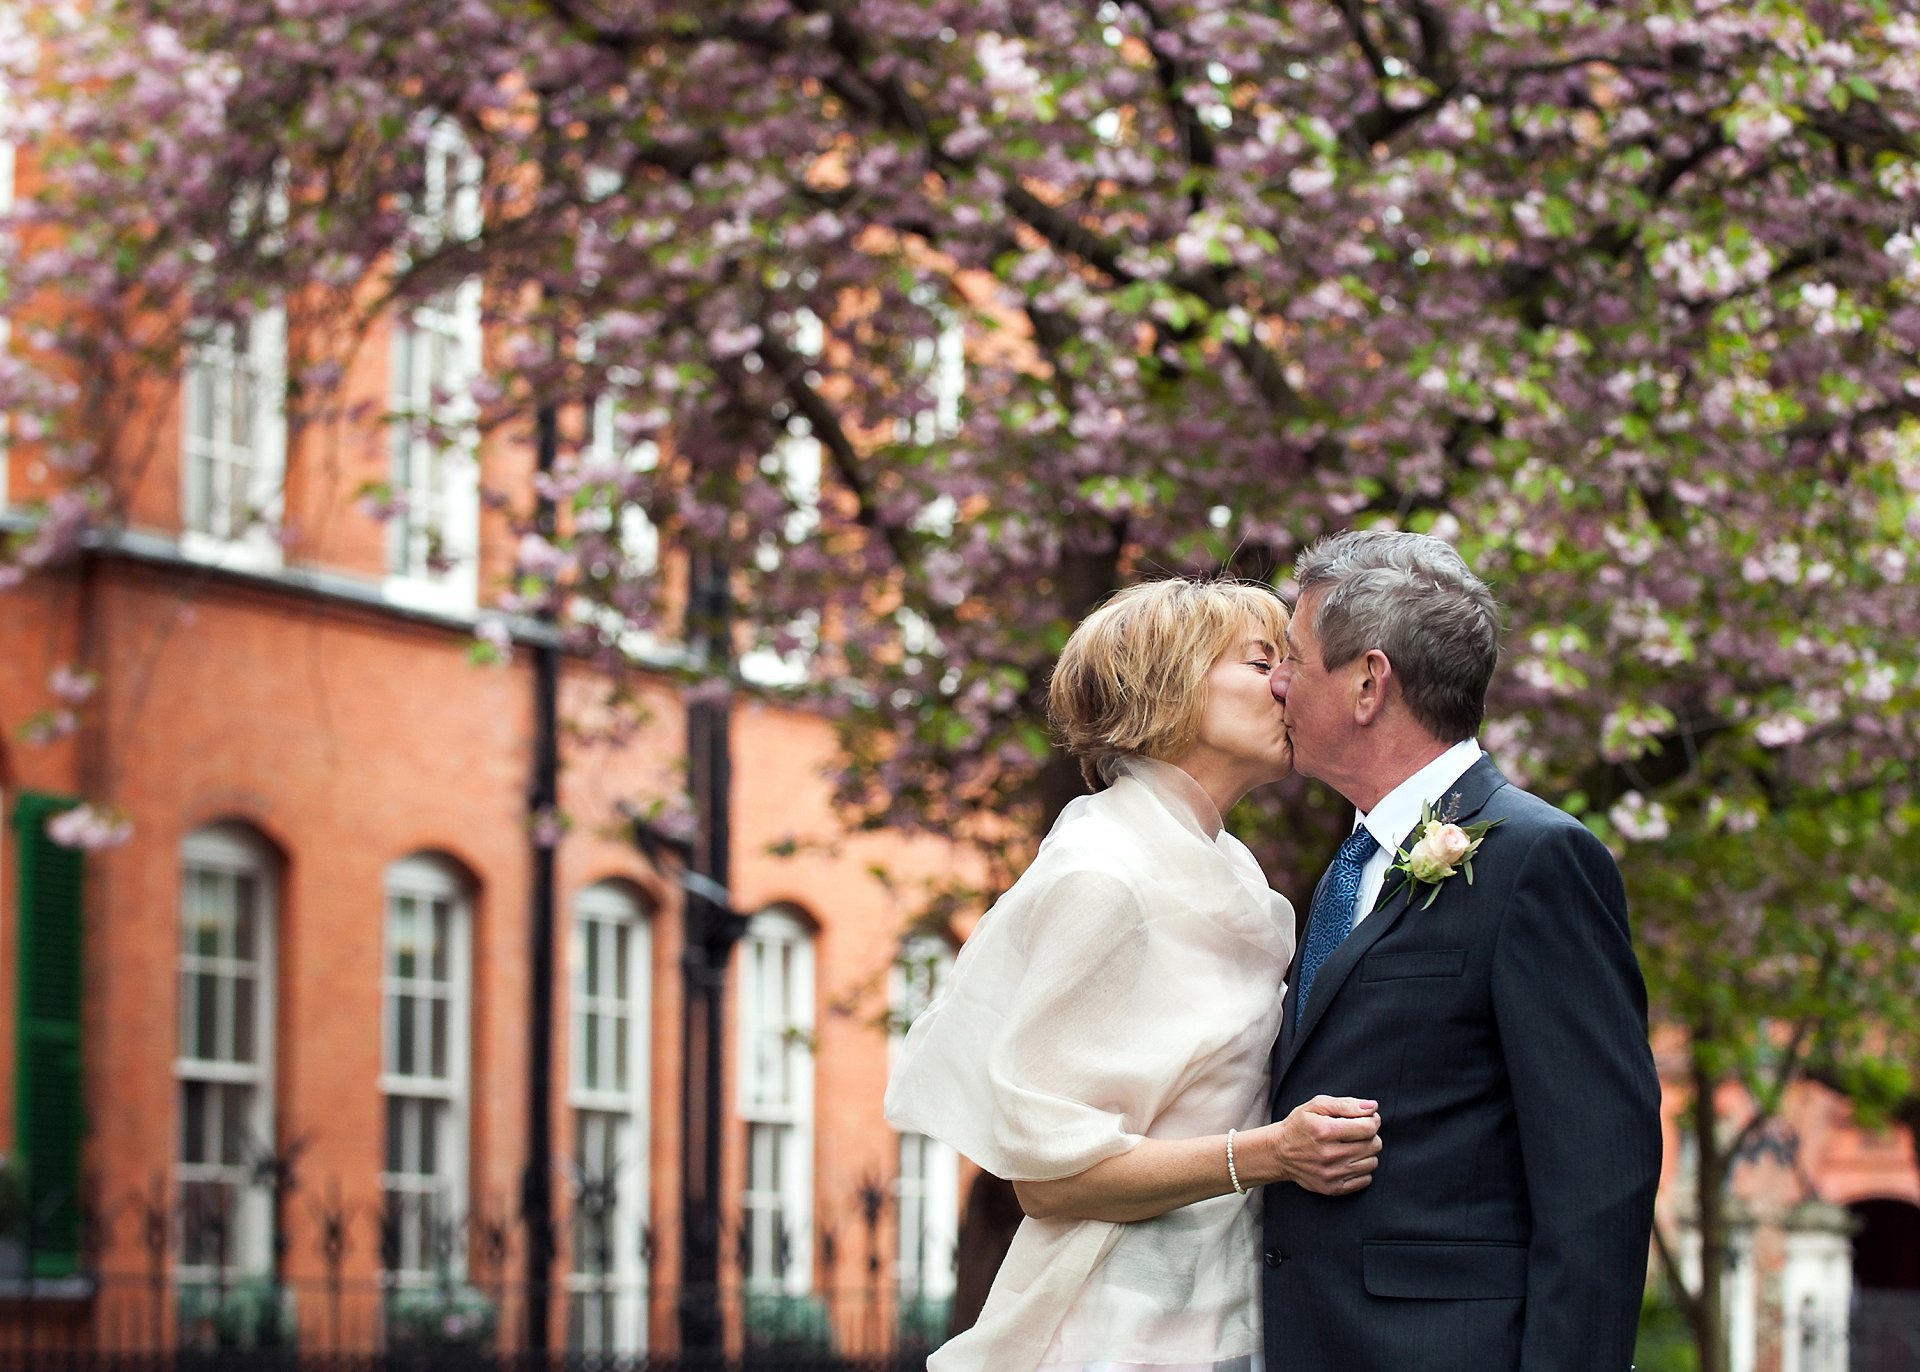 Richoux Wedding Reception - a bride & groom pose for photogrpaher Emma Duggan in Mount Street Gardens after their Mayfair Library wedding